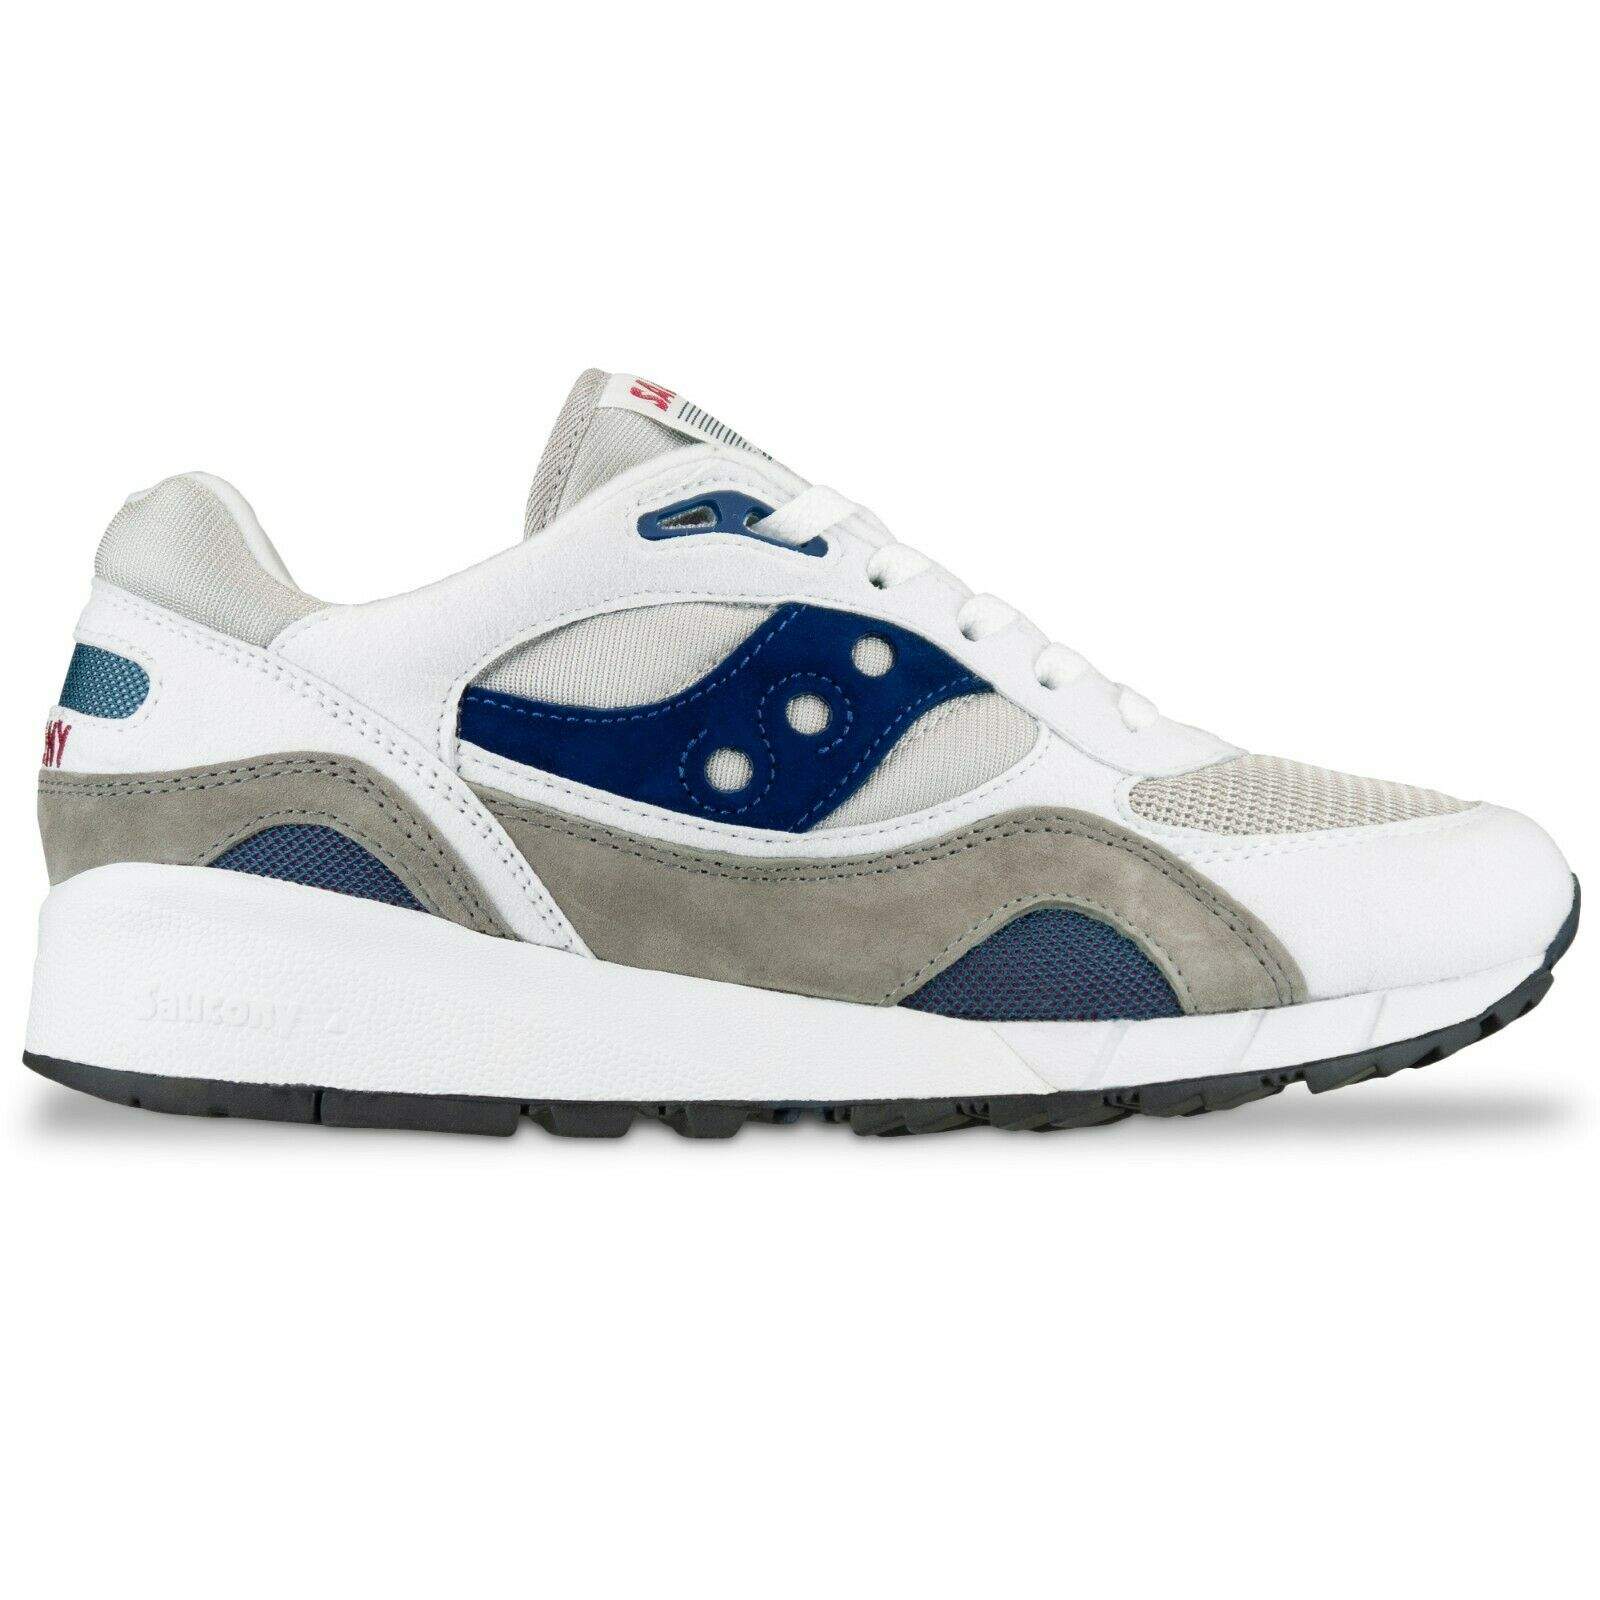 Saucony Trainers - Saucony Originals Shadow 6000 Vintage trainers - White Grey